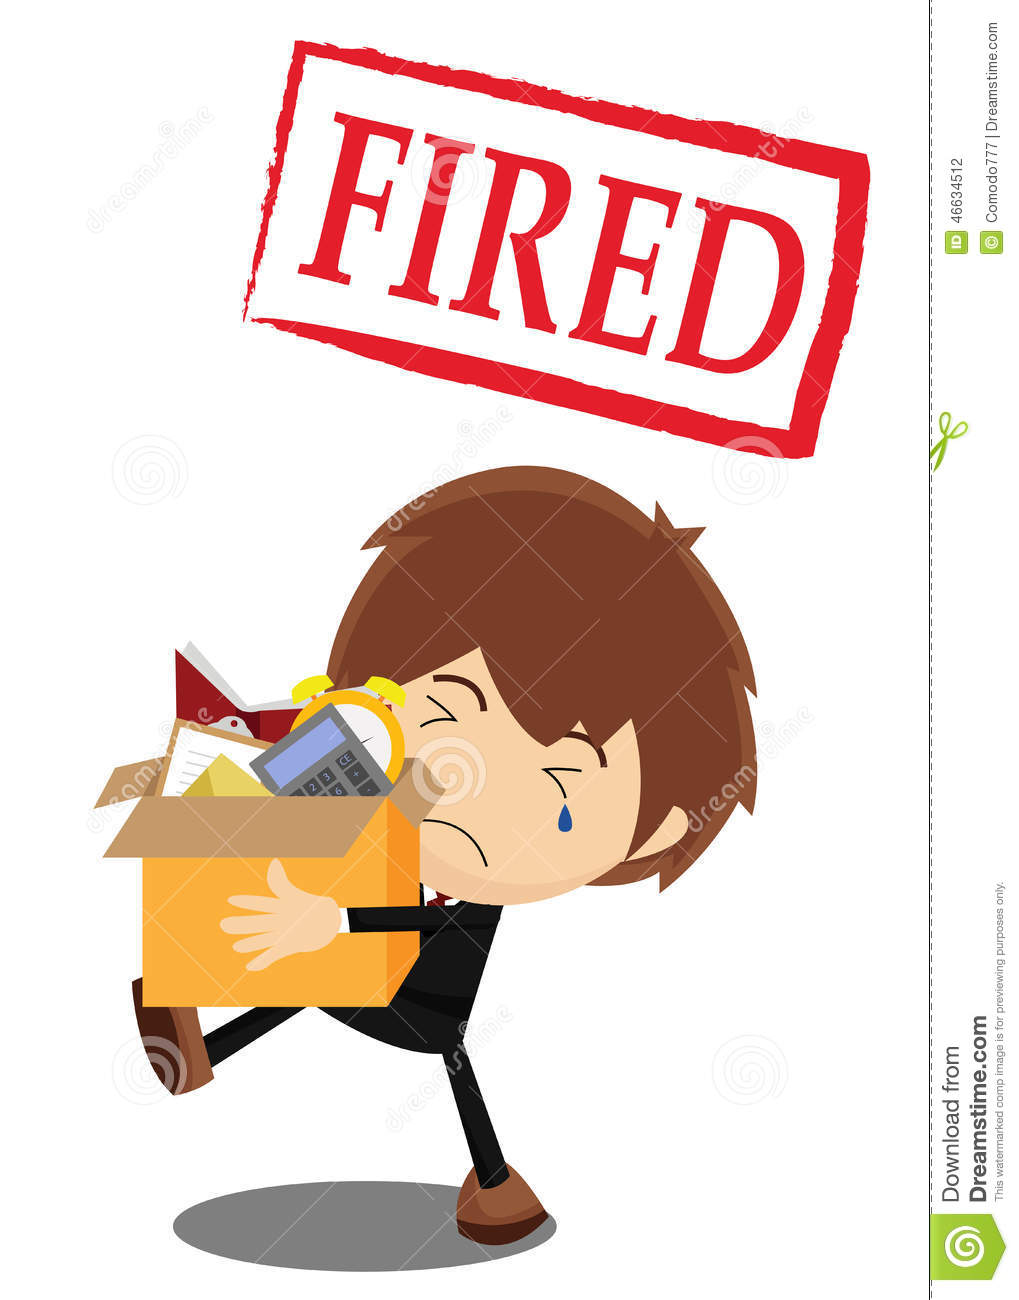 fired from job image information fired from job